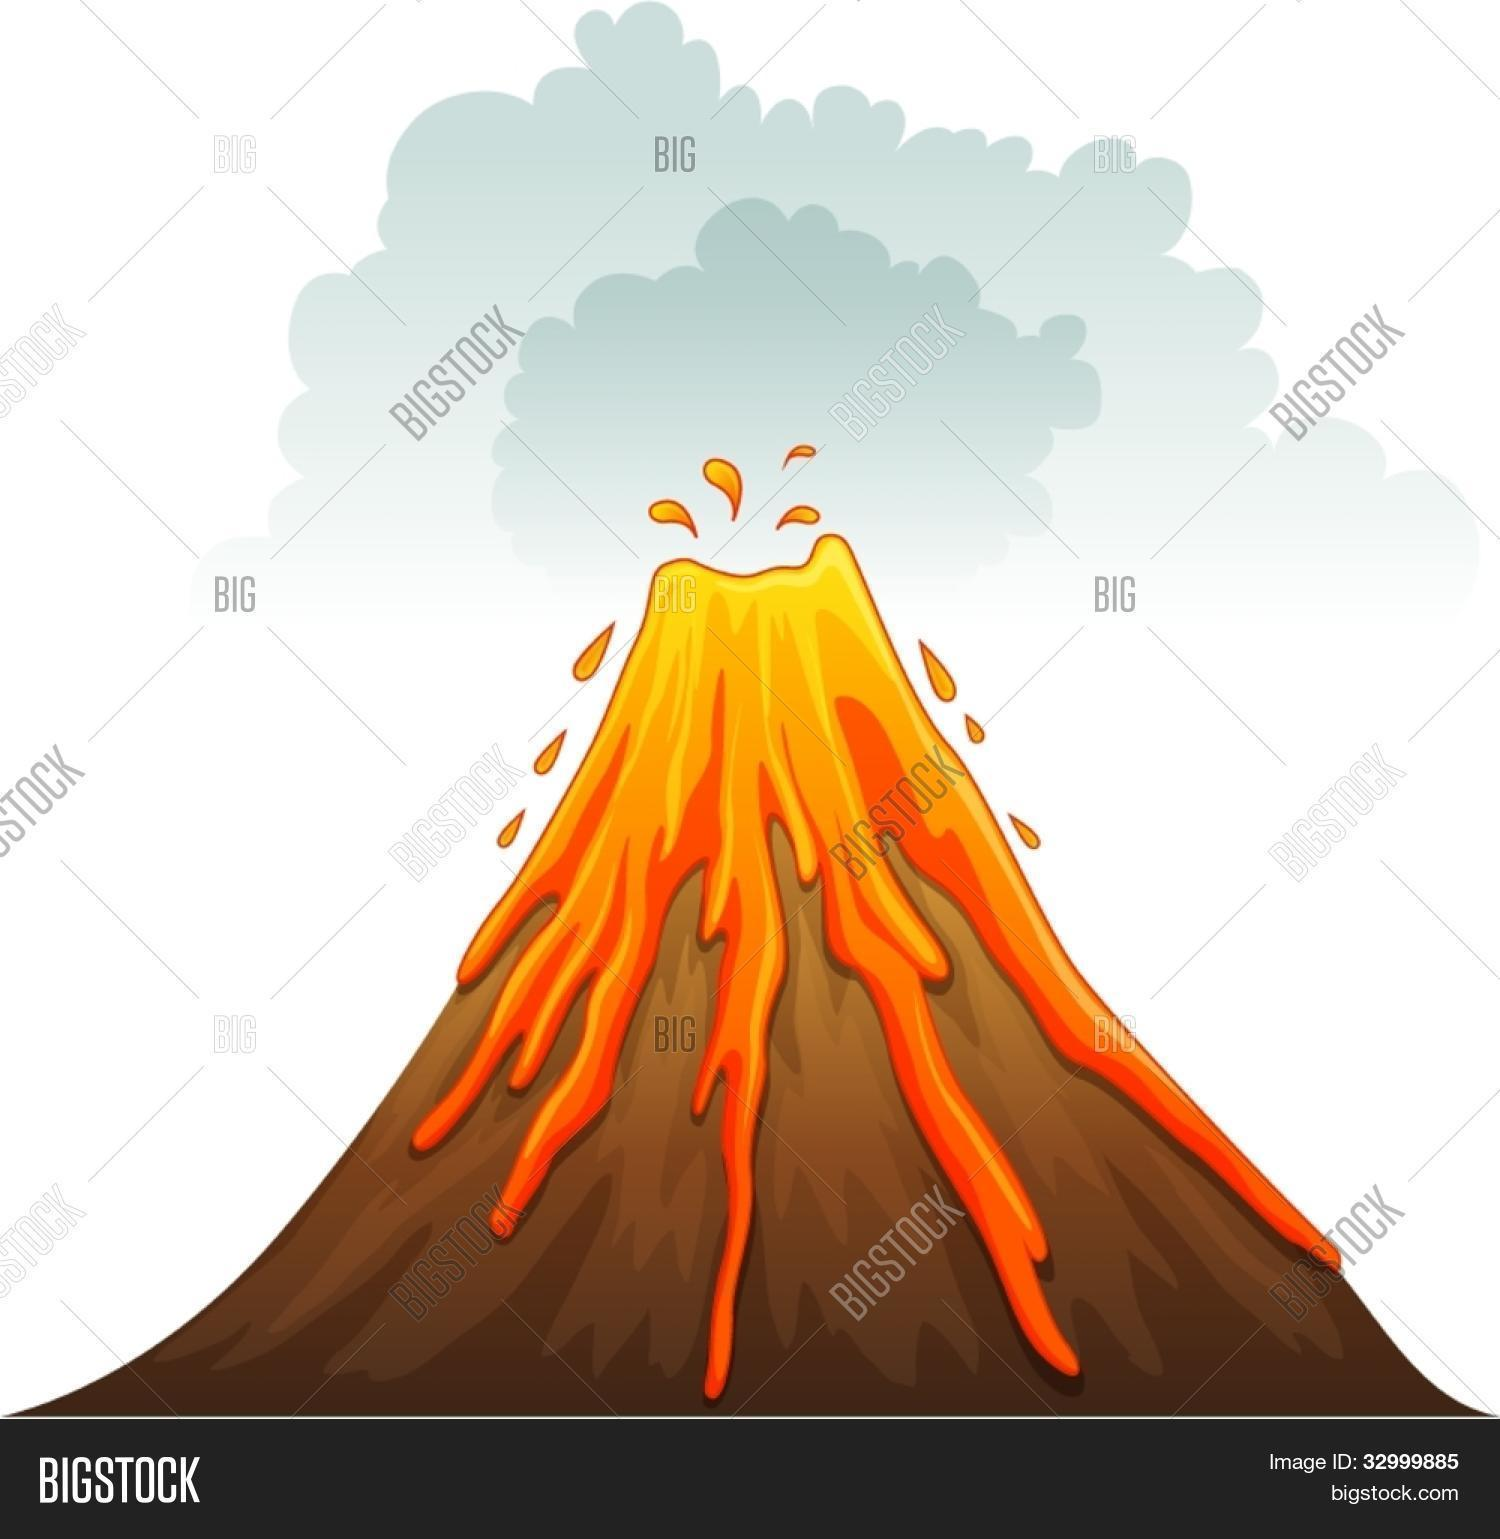 V Is For Volcano Clipart Illustration of a volc...